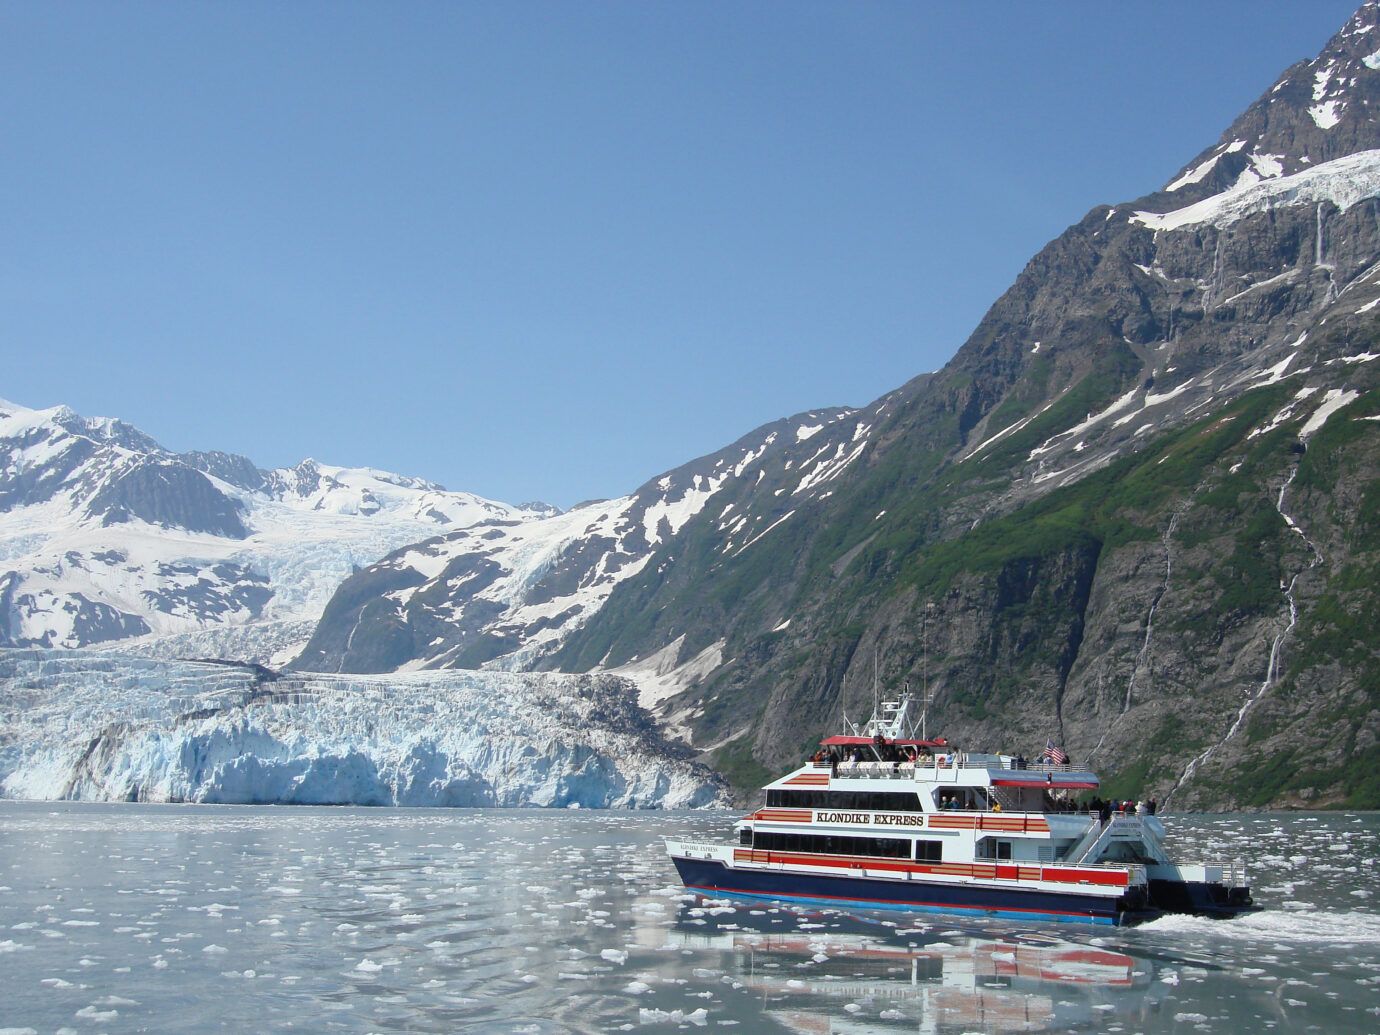 Prince William Sound Day Cruise in Anchorage